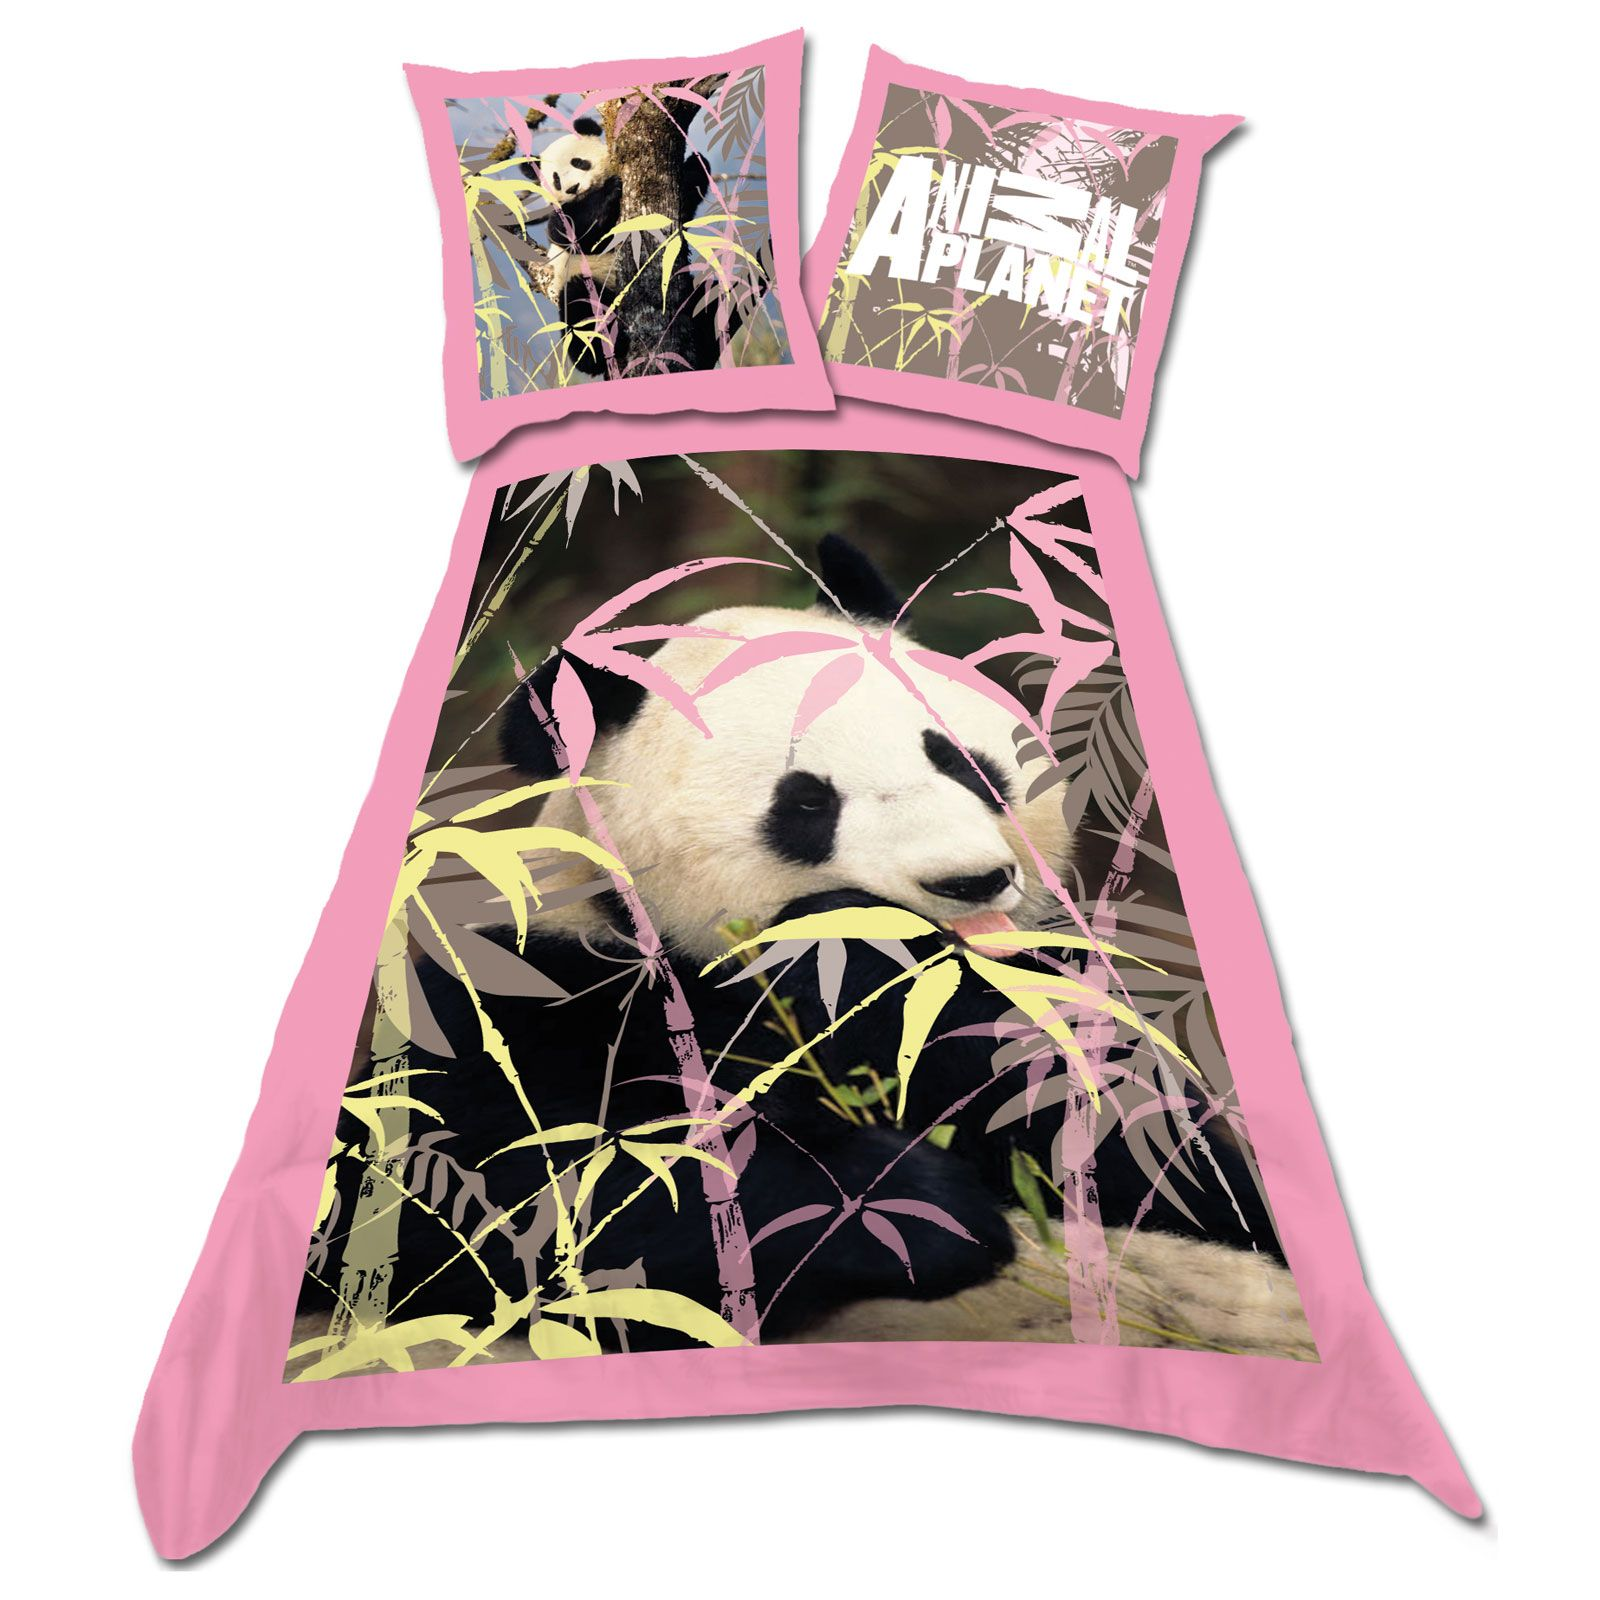 Animal planet 39 panda bear 39 single duvet cover 100 cotton for Parure de couette 260x240